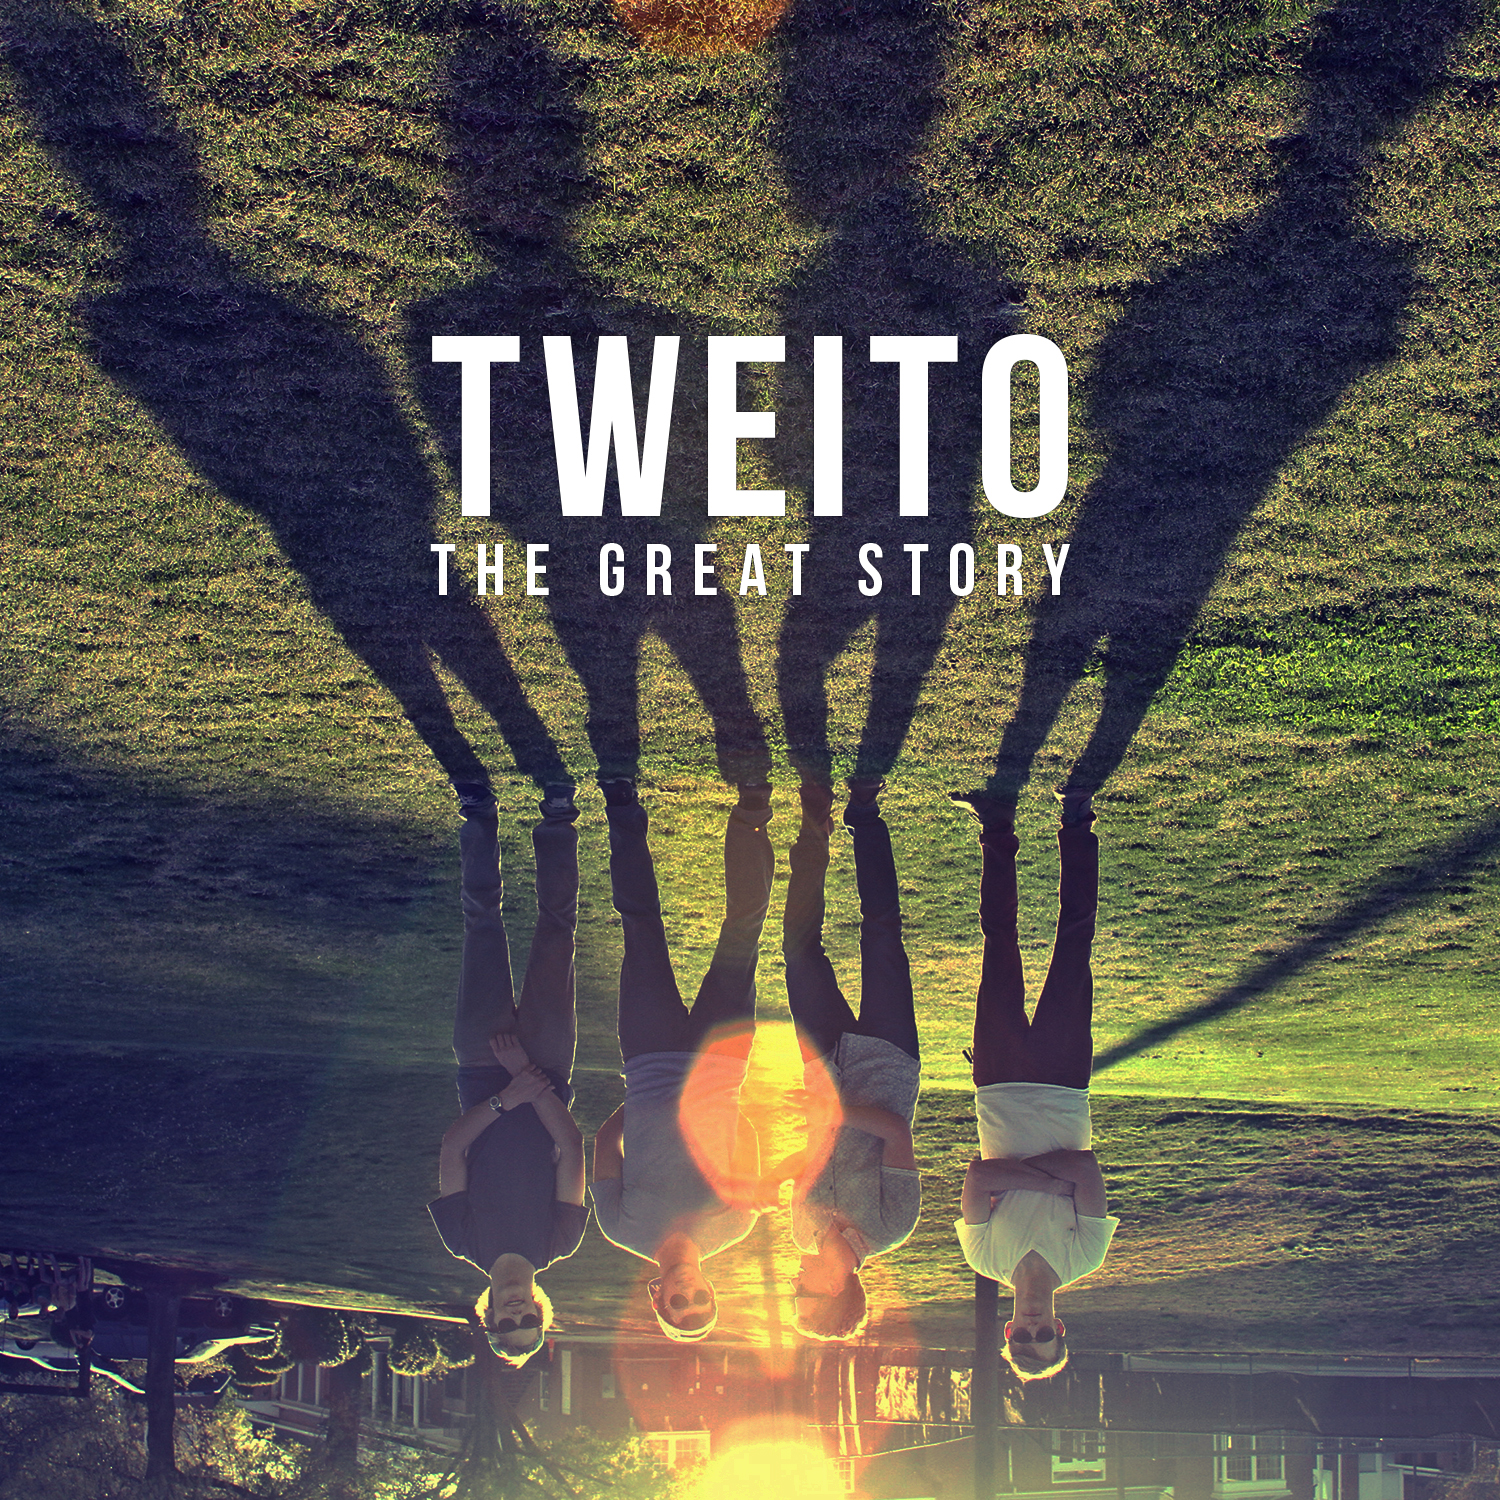 Tweito: The Great Story